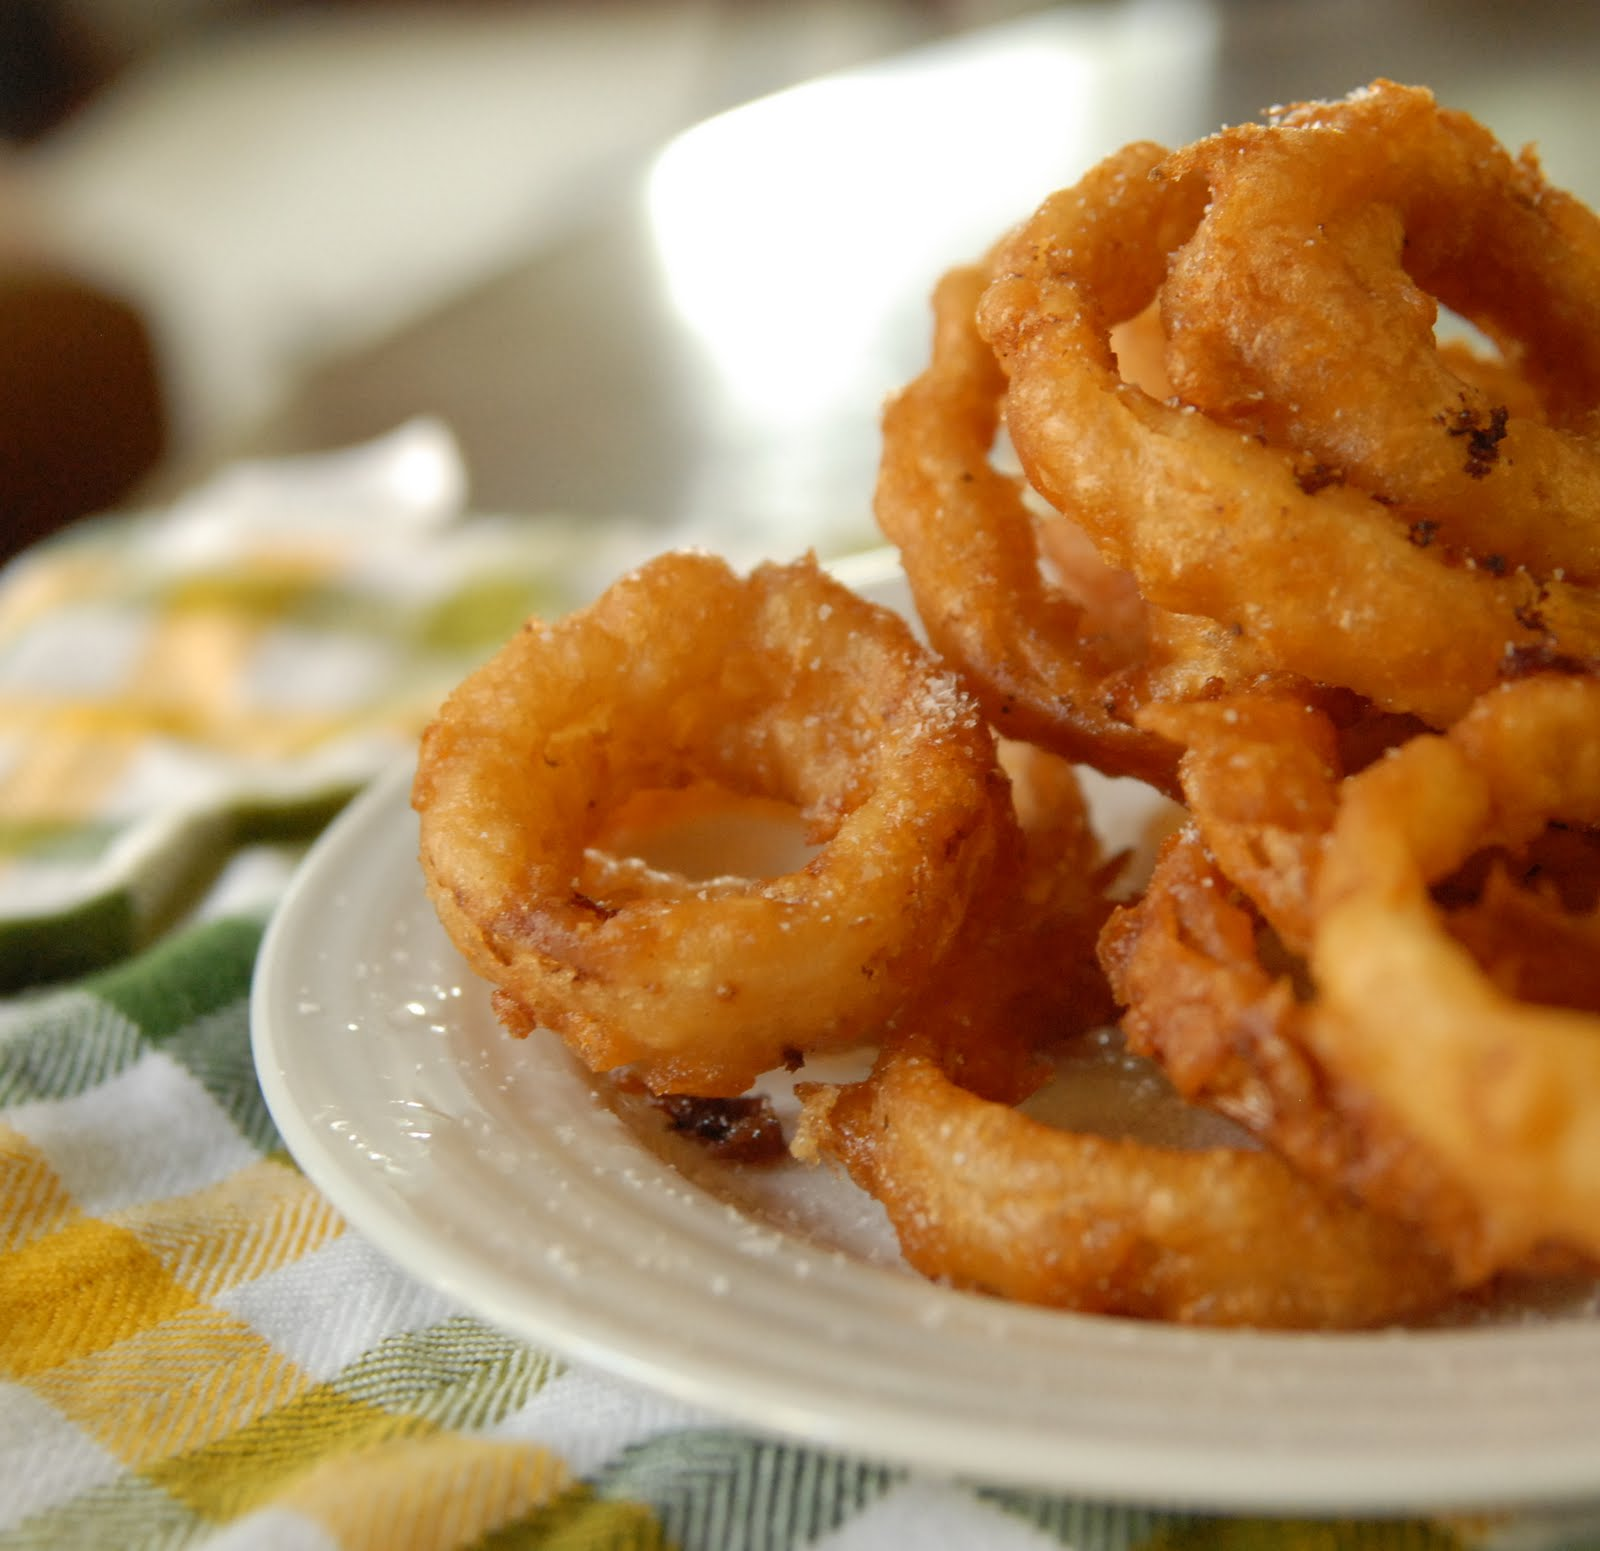 battered onion rings stout battered onion rings oven fried onion rings ...